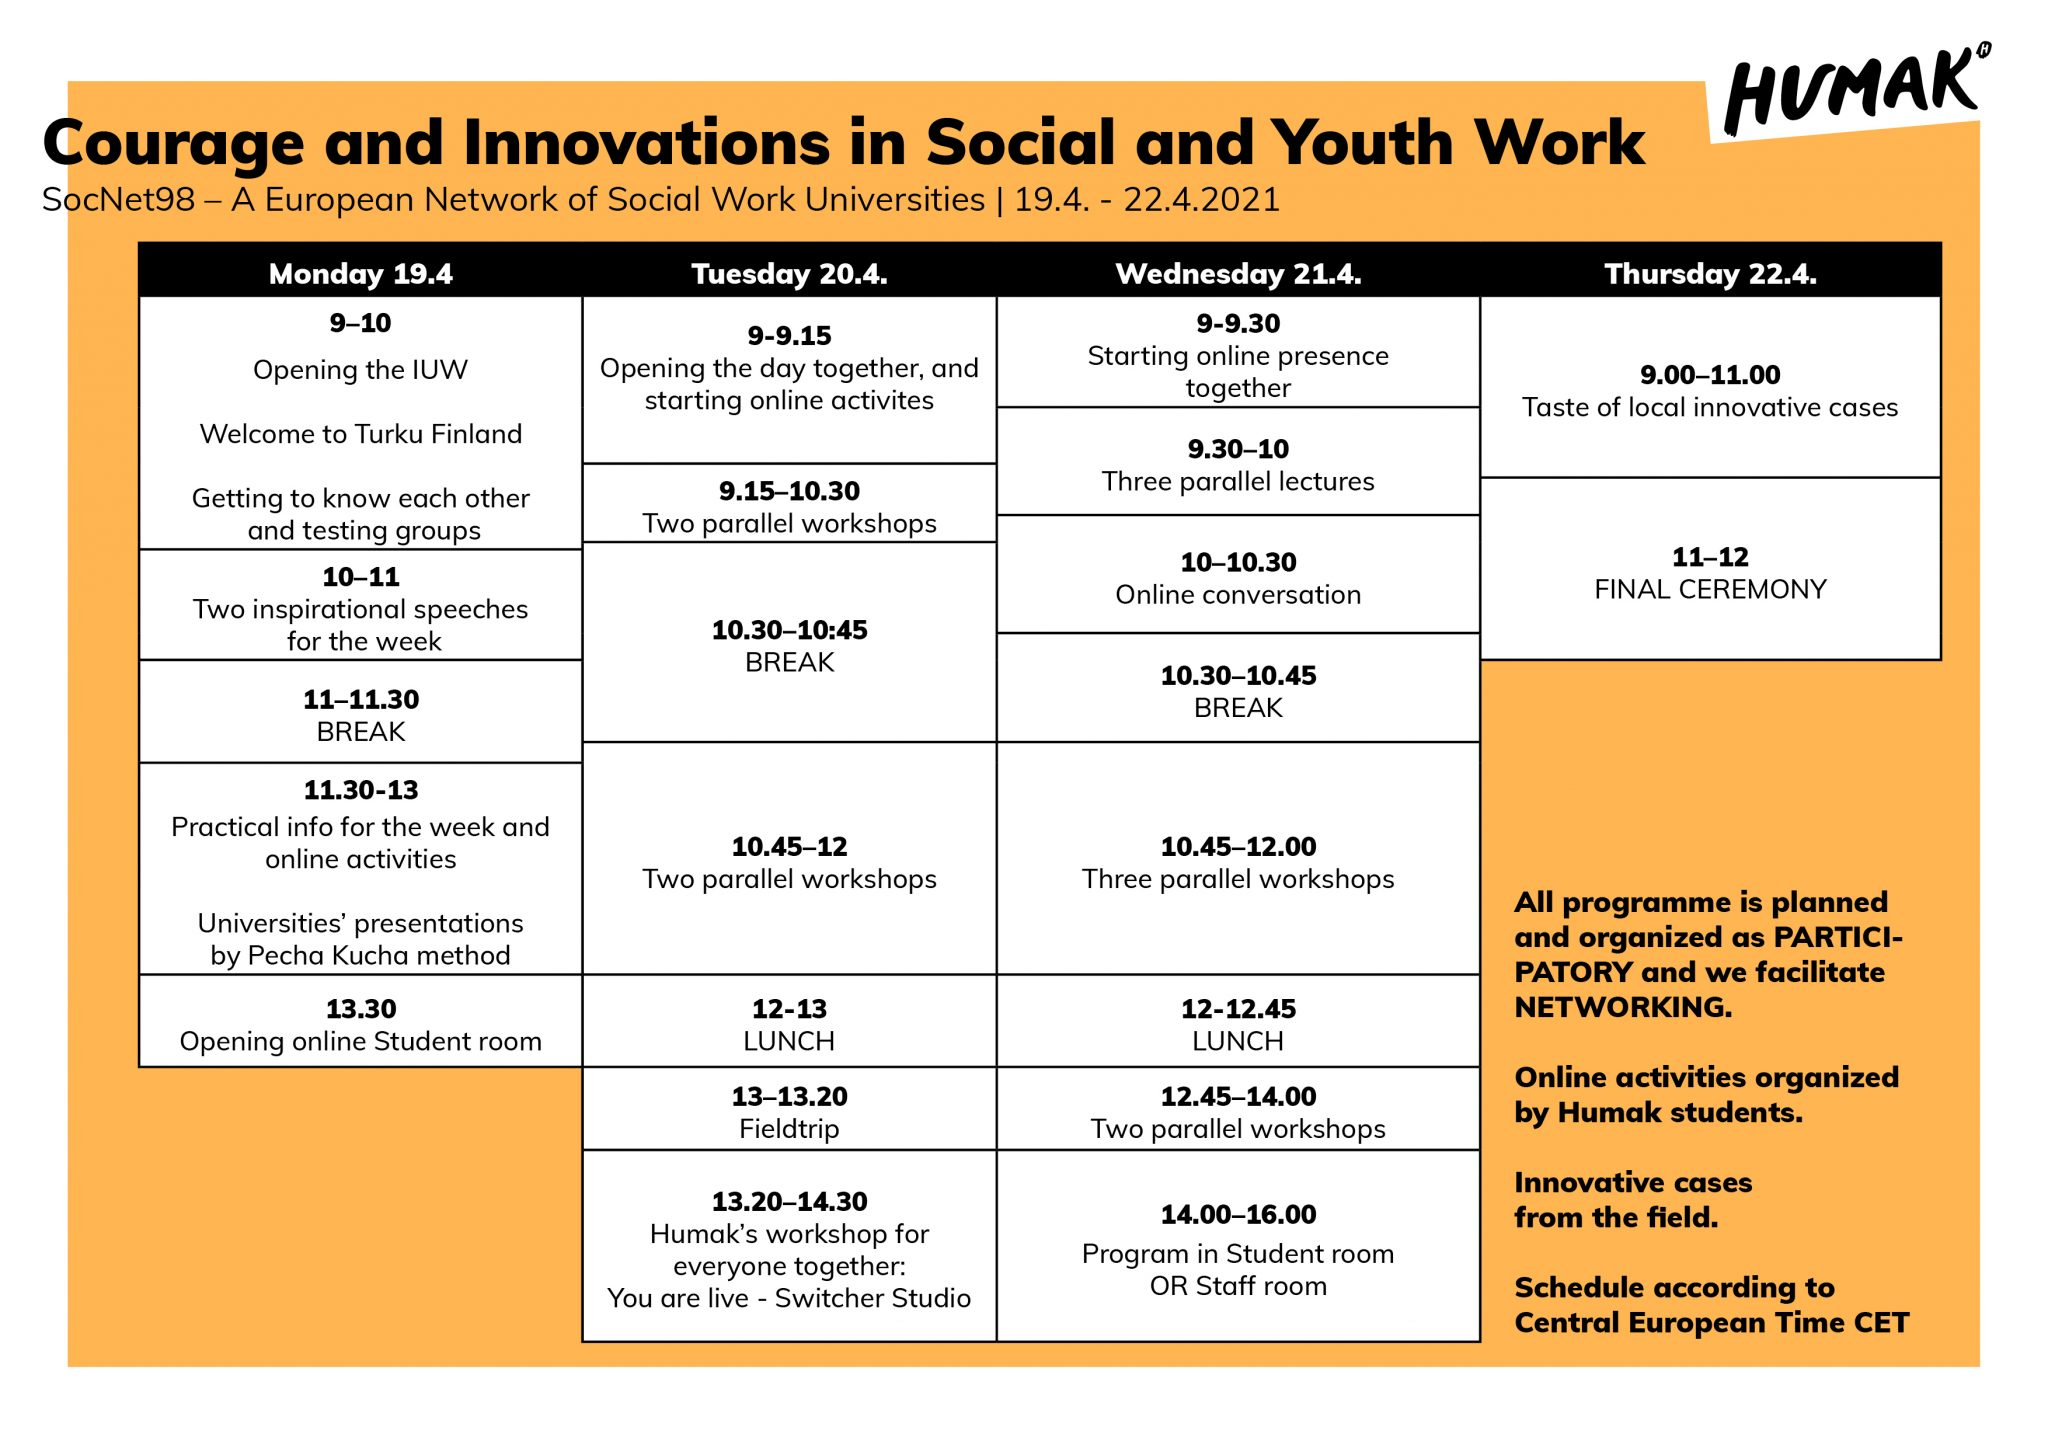 Courage and Innovations in Social and Youth Work. SocNet98 – A European Network of Social Work Universities. 19.4. – 22.4.2021. Monday April 19, 9-10 am. Opening of the IUW. Welcome to Turku Finland. Getting to know each other and testing groups. 10-11 am. Two inspirational speeches for the week. 11-11.30 am. Break. 11.30-13. Practical info for the week and online activities. Universities' presentations by Pecha Kucha method. 13.30 pm Opening online student room. Tuesday April 20. 9-9.15 am. Opening the day together, and starting online activities. 9.15-10.30 am. Two parallel workshops. 10.30 - 10.45 am. break. 10.45 - 12 am Two parallel workshops. 12-13 pm lunch. 13-13.20 pm fieldtrip. 13.20-14.30 pm Humak's workshop for everyone together: you are live – switcher studio. Wednesday April 21. 9-9.30 am. Starting online presence together. 9.30-10 am three parallel lectures. 10-10.30 am online conversation. 10.30-10.45 break. 10.45-12.00 three parallel workshops. 12-12.45 lunch. 12.45-14.00 two parallel workshops. 14.00-16.00 program in student room or staff. Thursday April 22. 9.00-11am taste of local innovative cases. 11-12 final ceremony. All programme is planned and organized as participatory, and we facilitate networking. Online activities organized by Humak students. Innovative cases from the field. Schedule according to central European time CET.